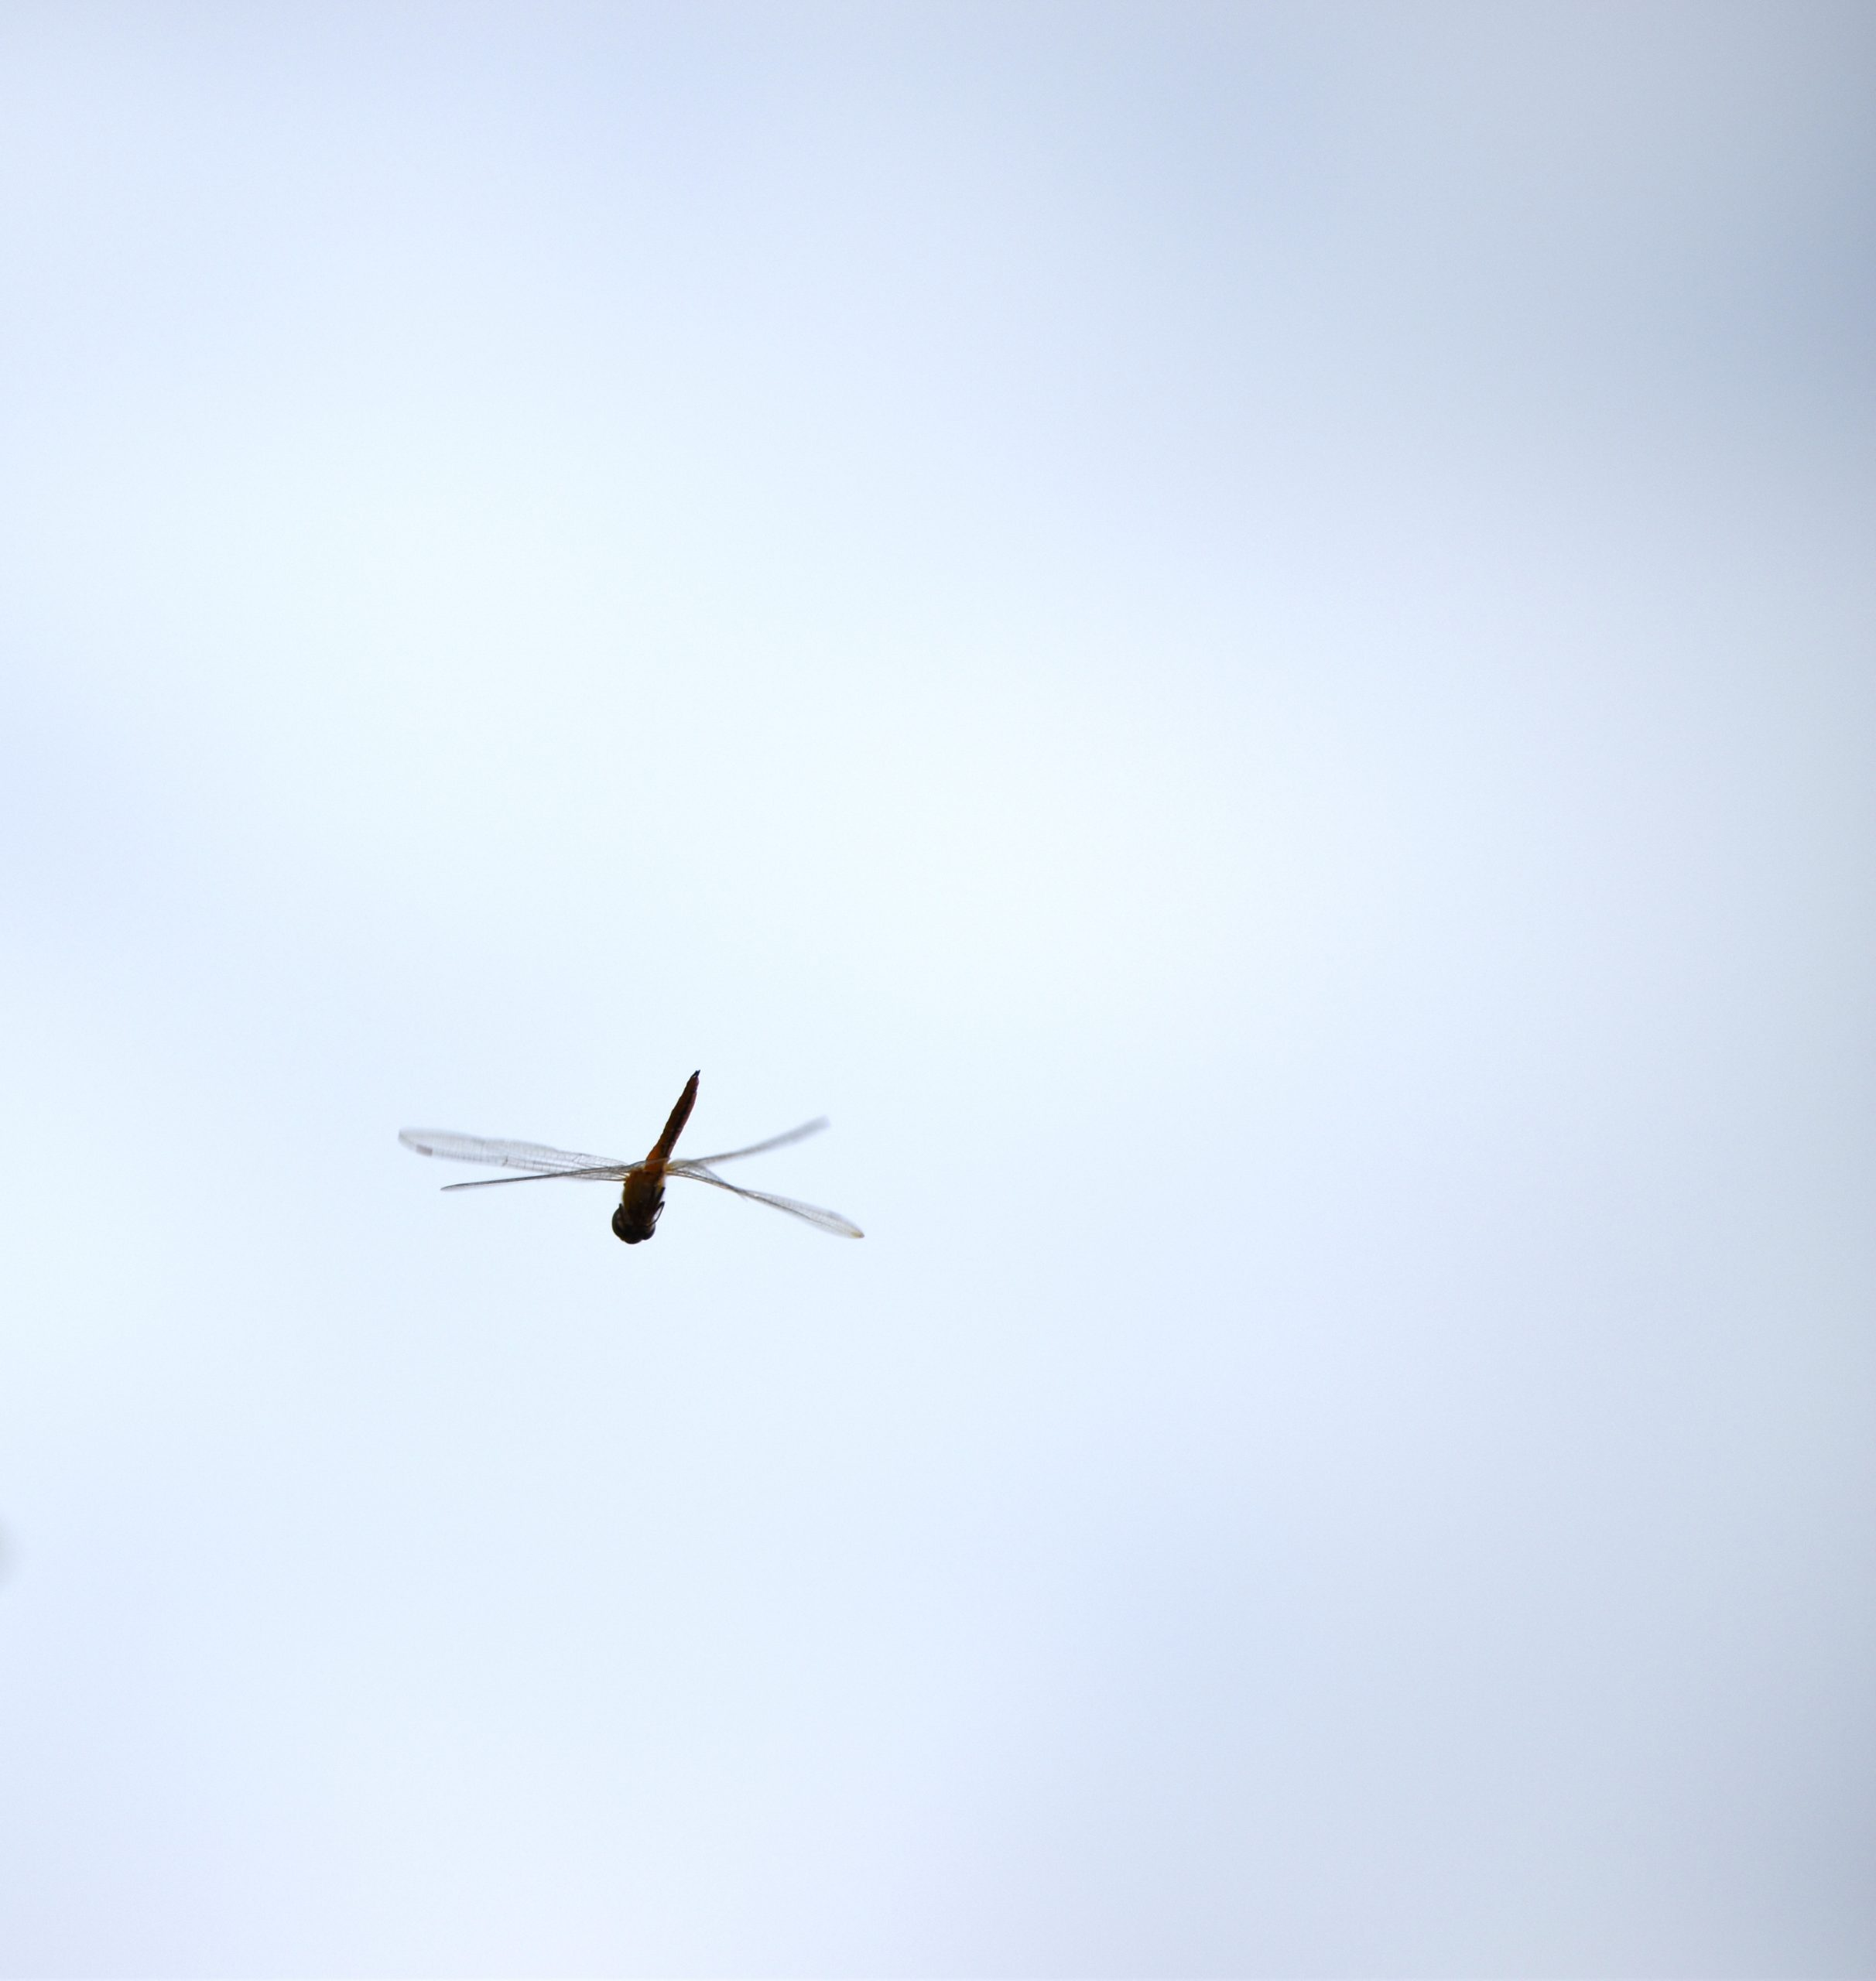 A dragonfly in air